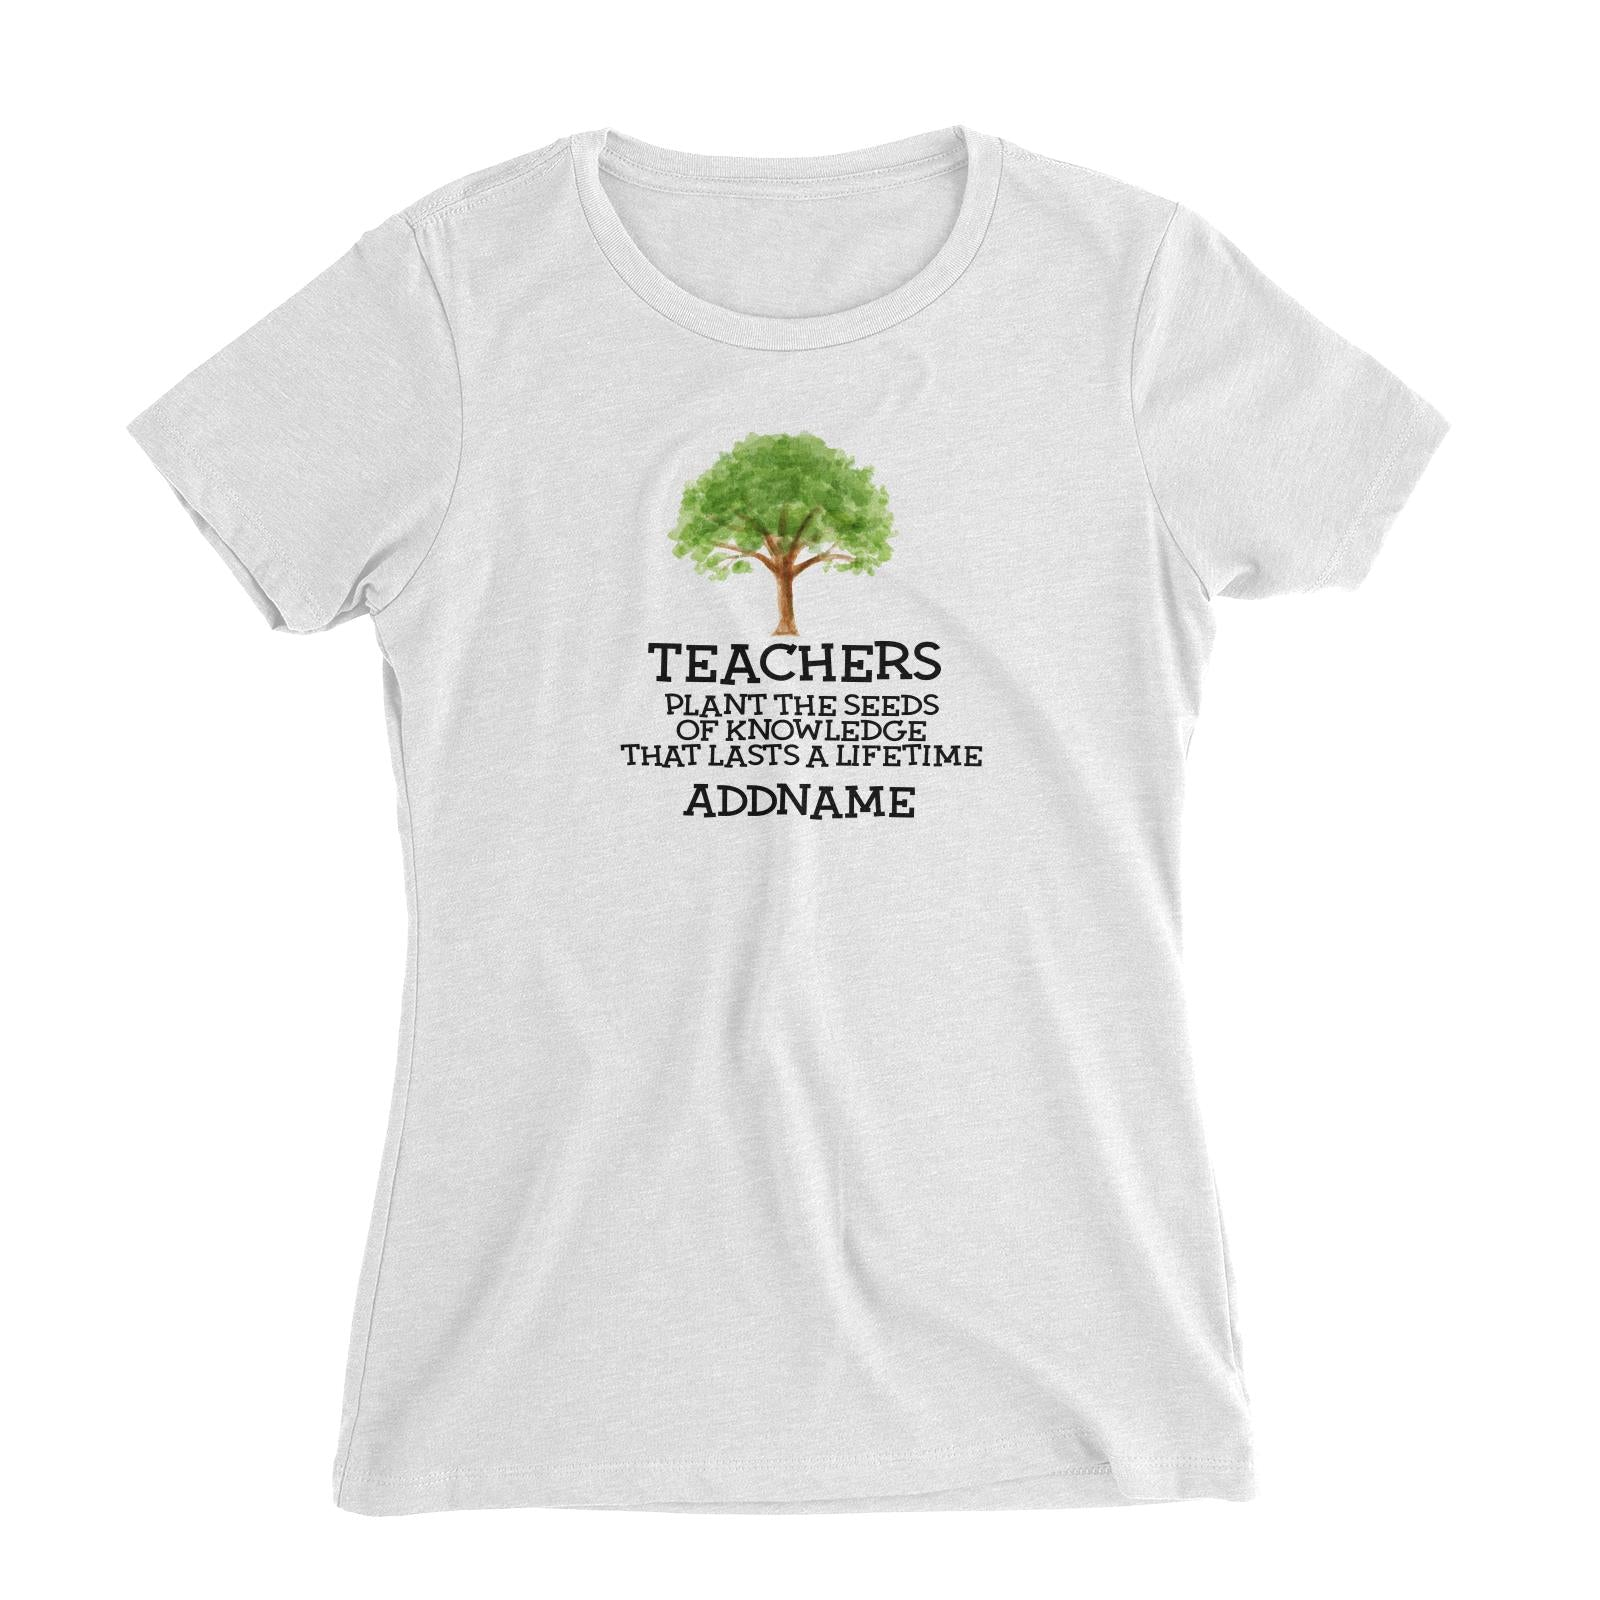 Teacher Quotes 2 Teachers Plant The Seeds Of Knowledge That Lasts A Lifetime Addname Women's Slim Fit T-Shirt